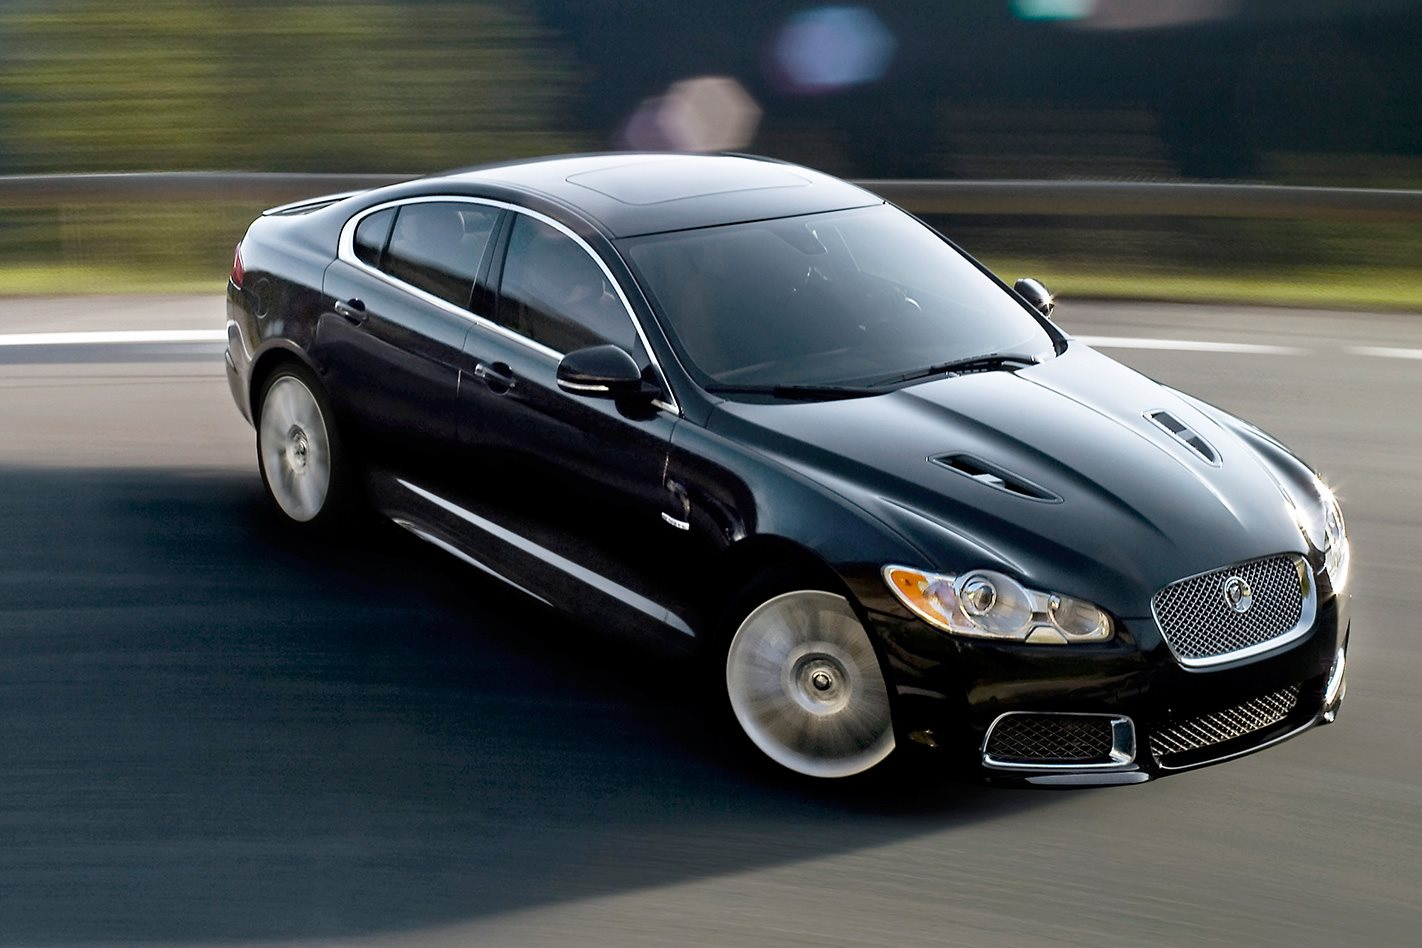 2009 Jaguar XF-R black sedan